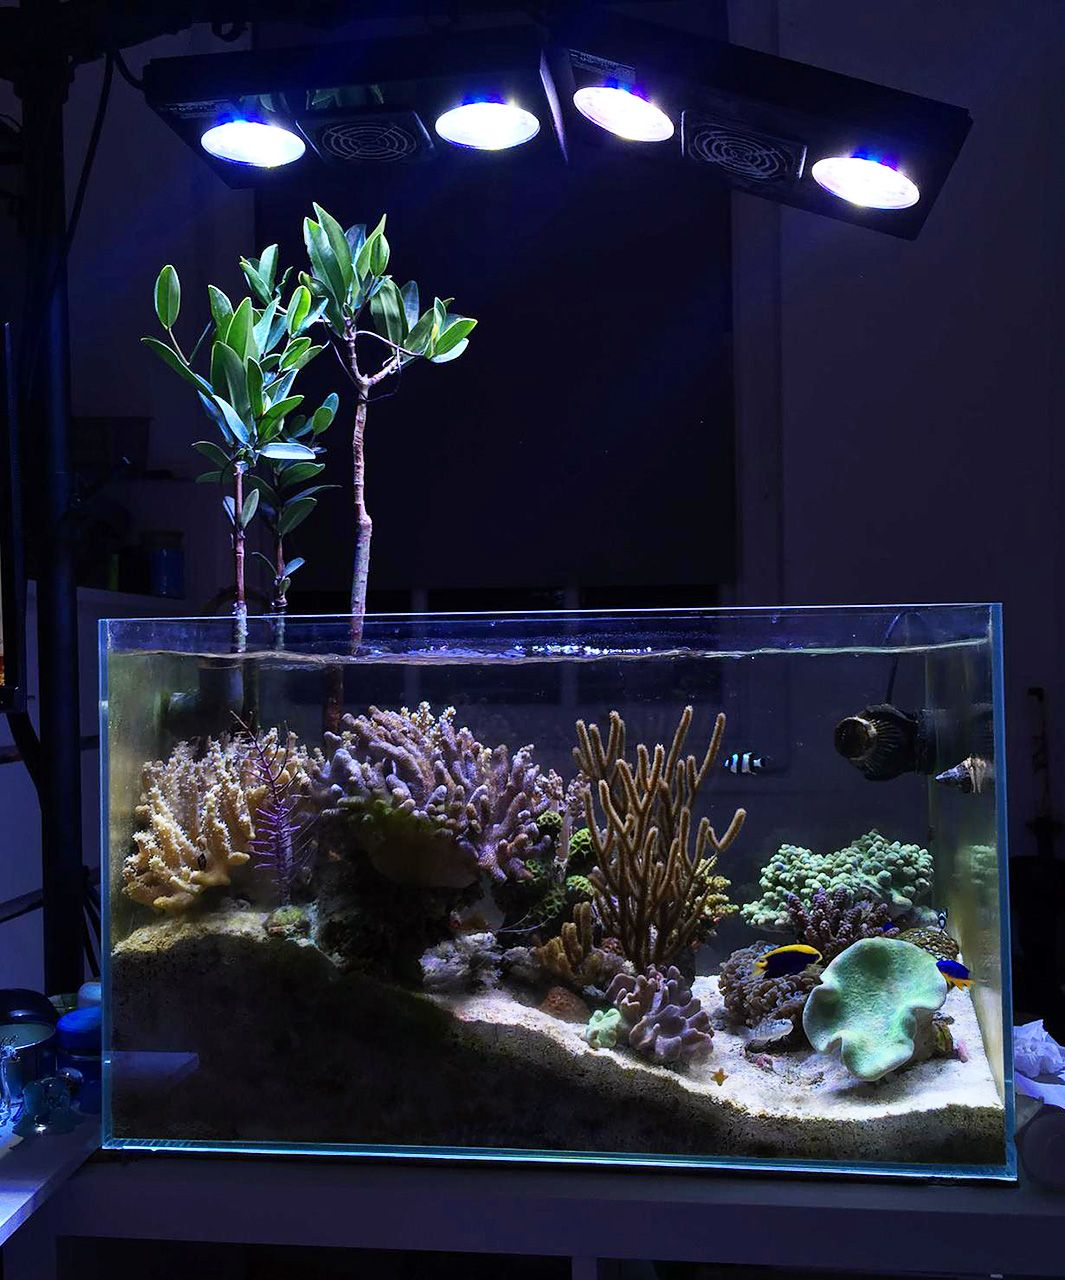 Freshwater aquarium fish uk - Summary Pet Tropical Fish Are Hardy And Can Adjust To Any Kind Of Environment Pet Tropical Fish Show Signs Of Stress And Disease If There Is Lack Of